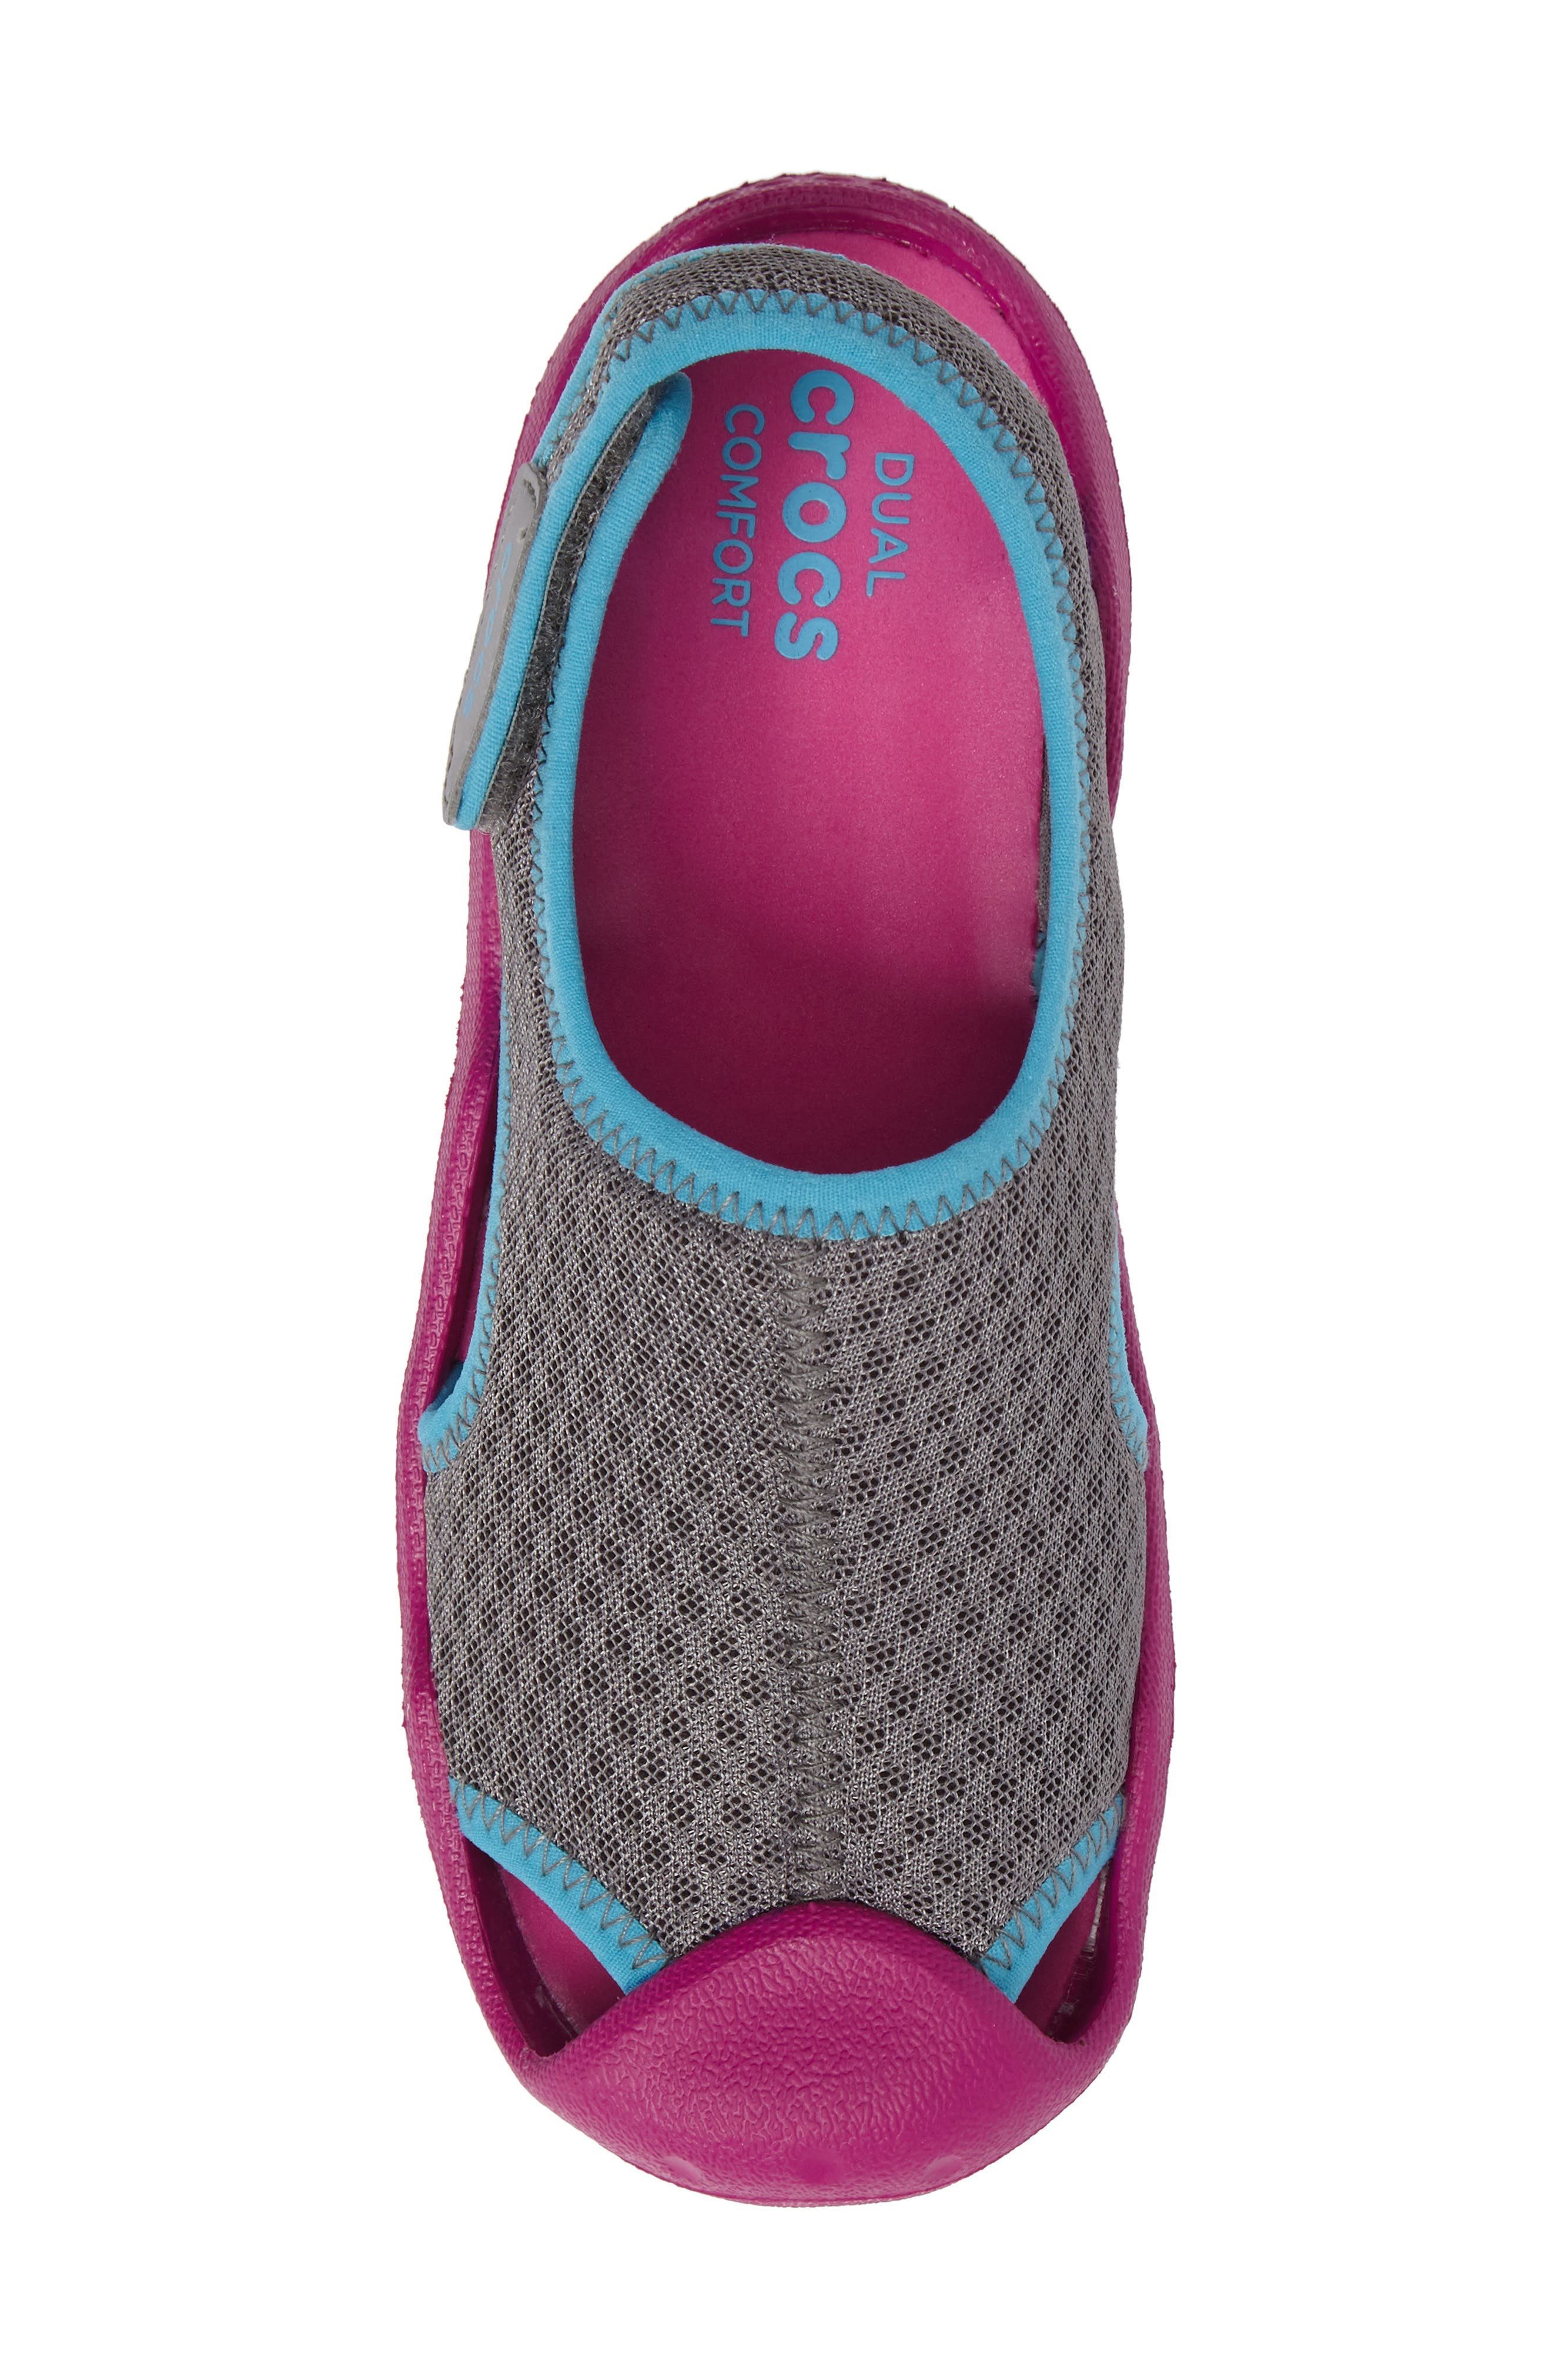 Swiftwater Sandal,                             Alternate thumbnail 5, color,                             057